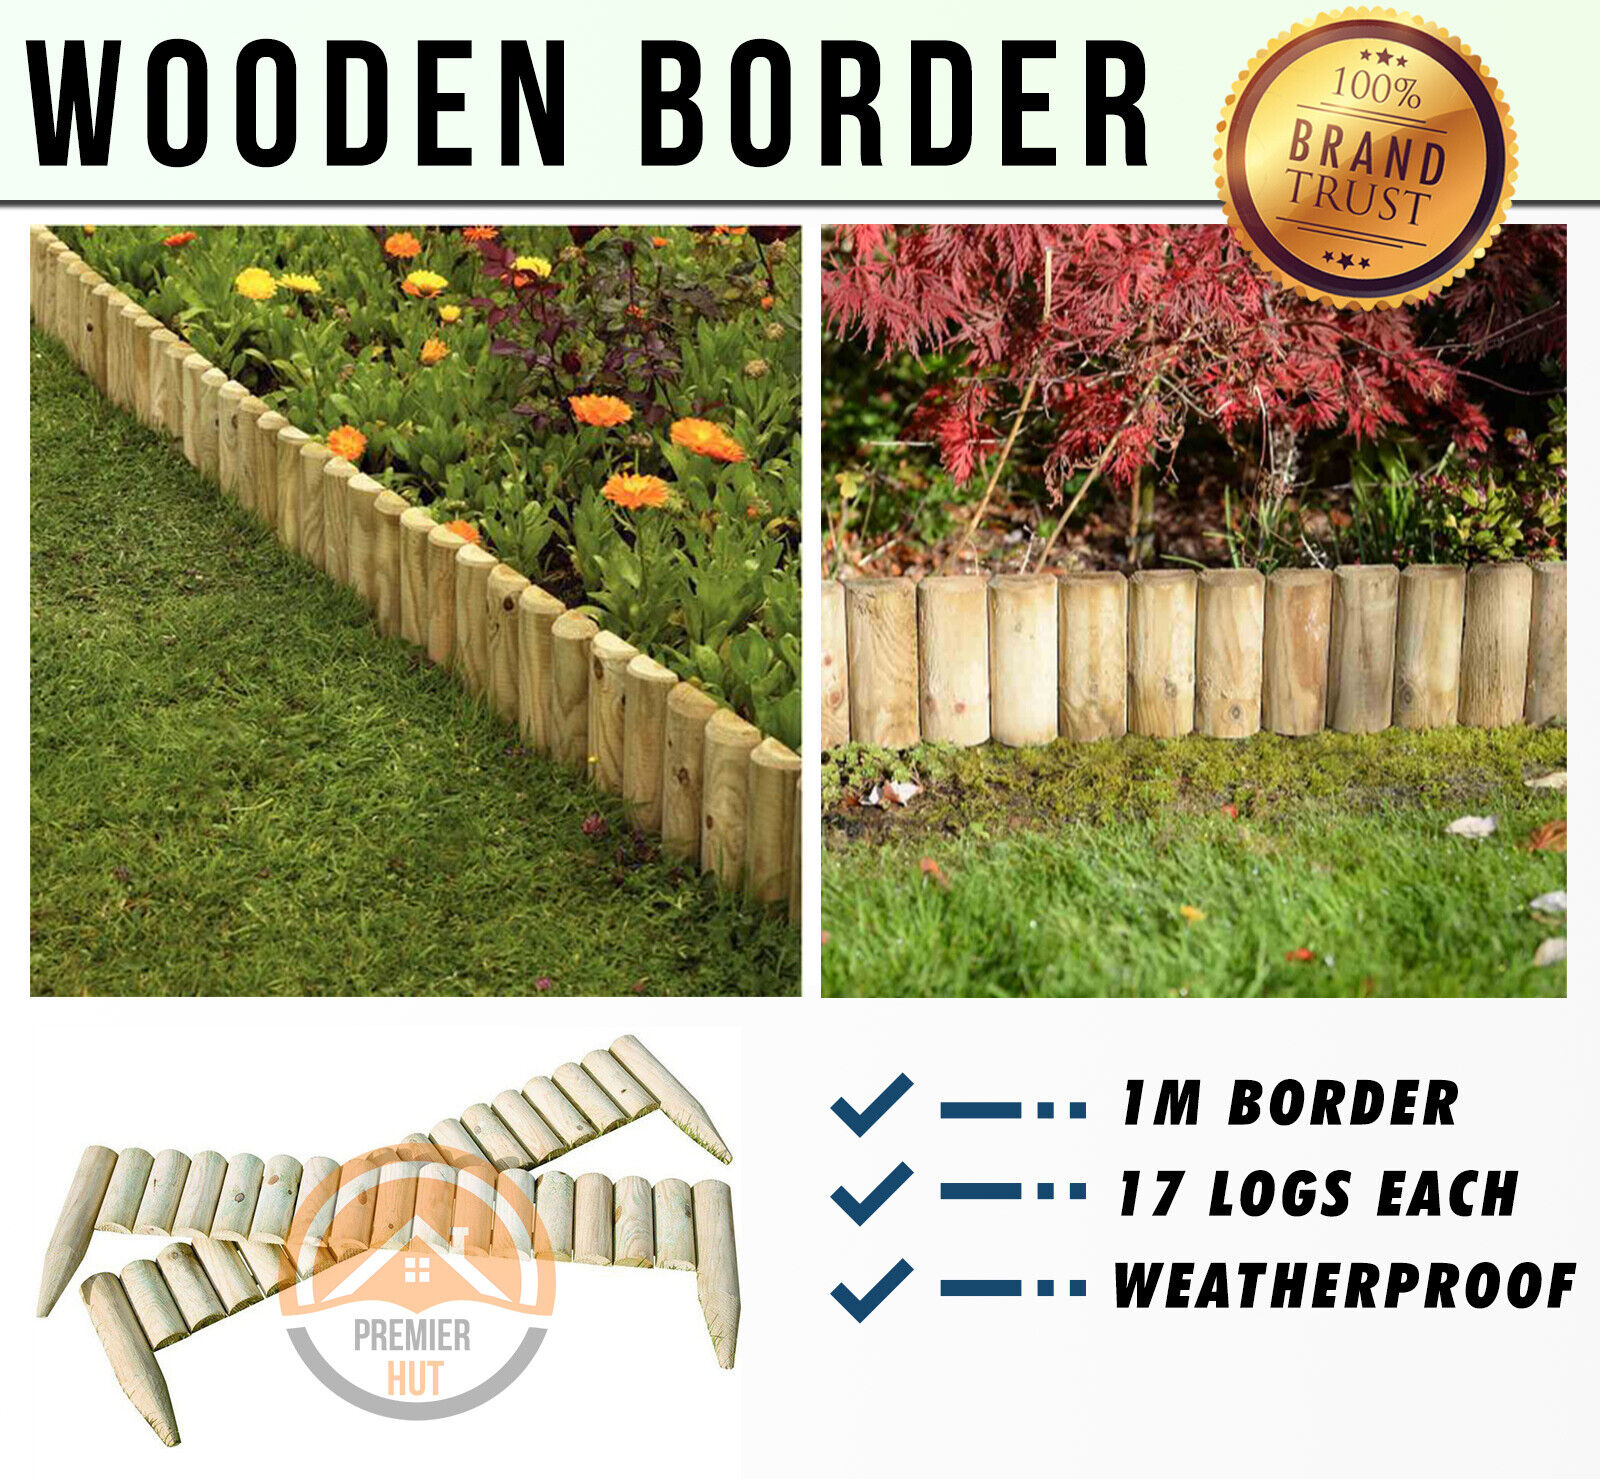 Garden Edging Products Roll Log Wooden Border Edge Landscaping